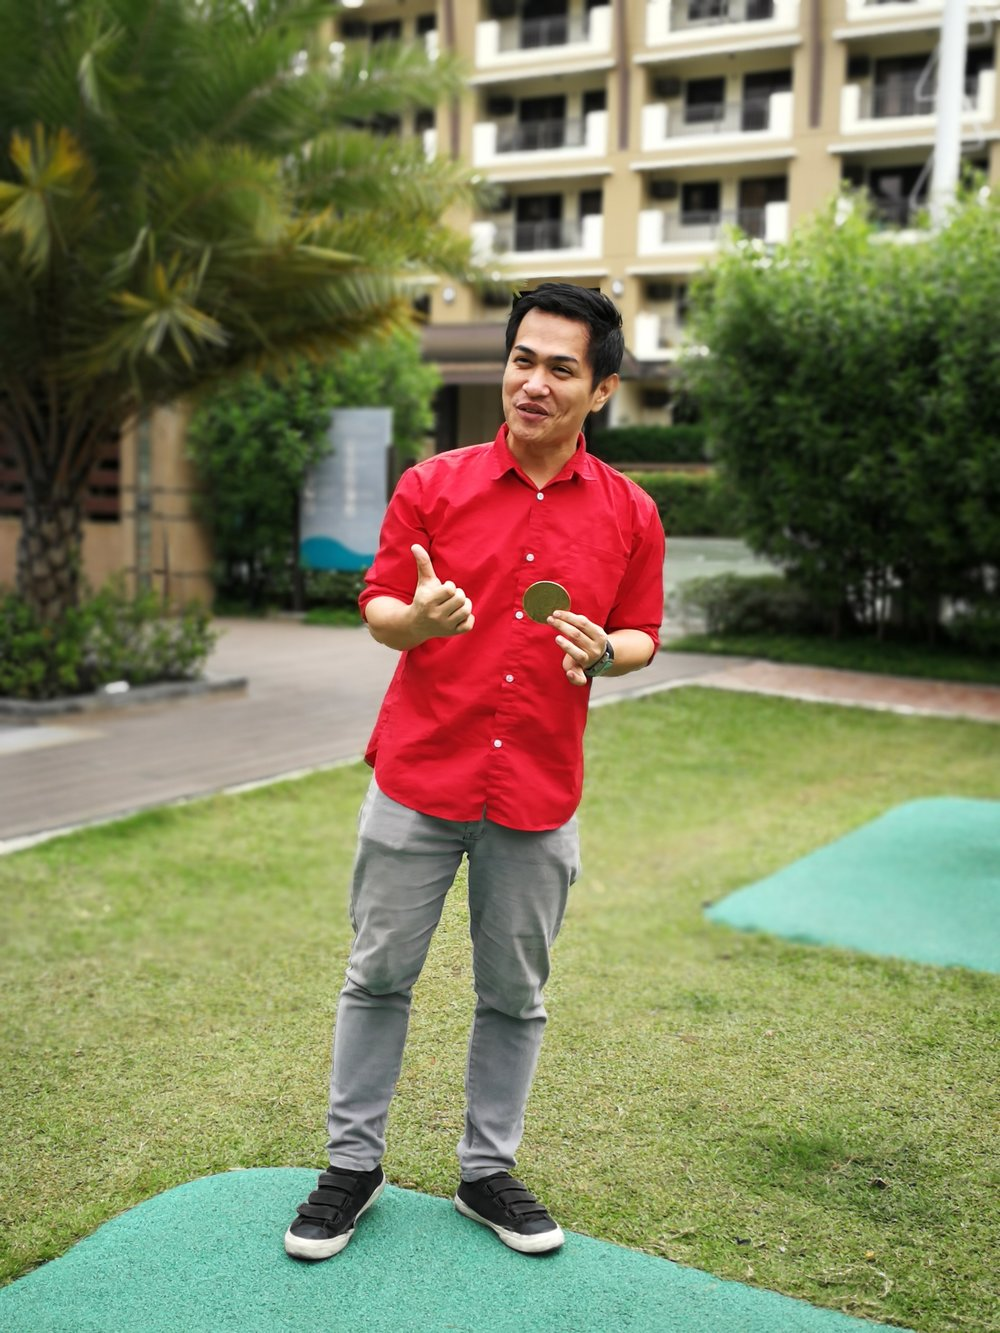 Luna performs magic to earn extra cash to help pay for their condo unit in Levina Place Alvher a.k.a. Volter The Magician demonstrates one of his favorite coin tricks